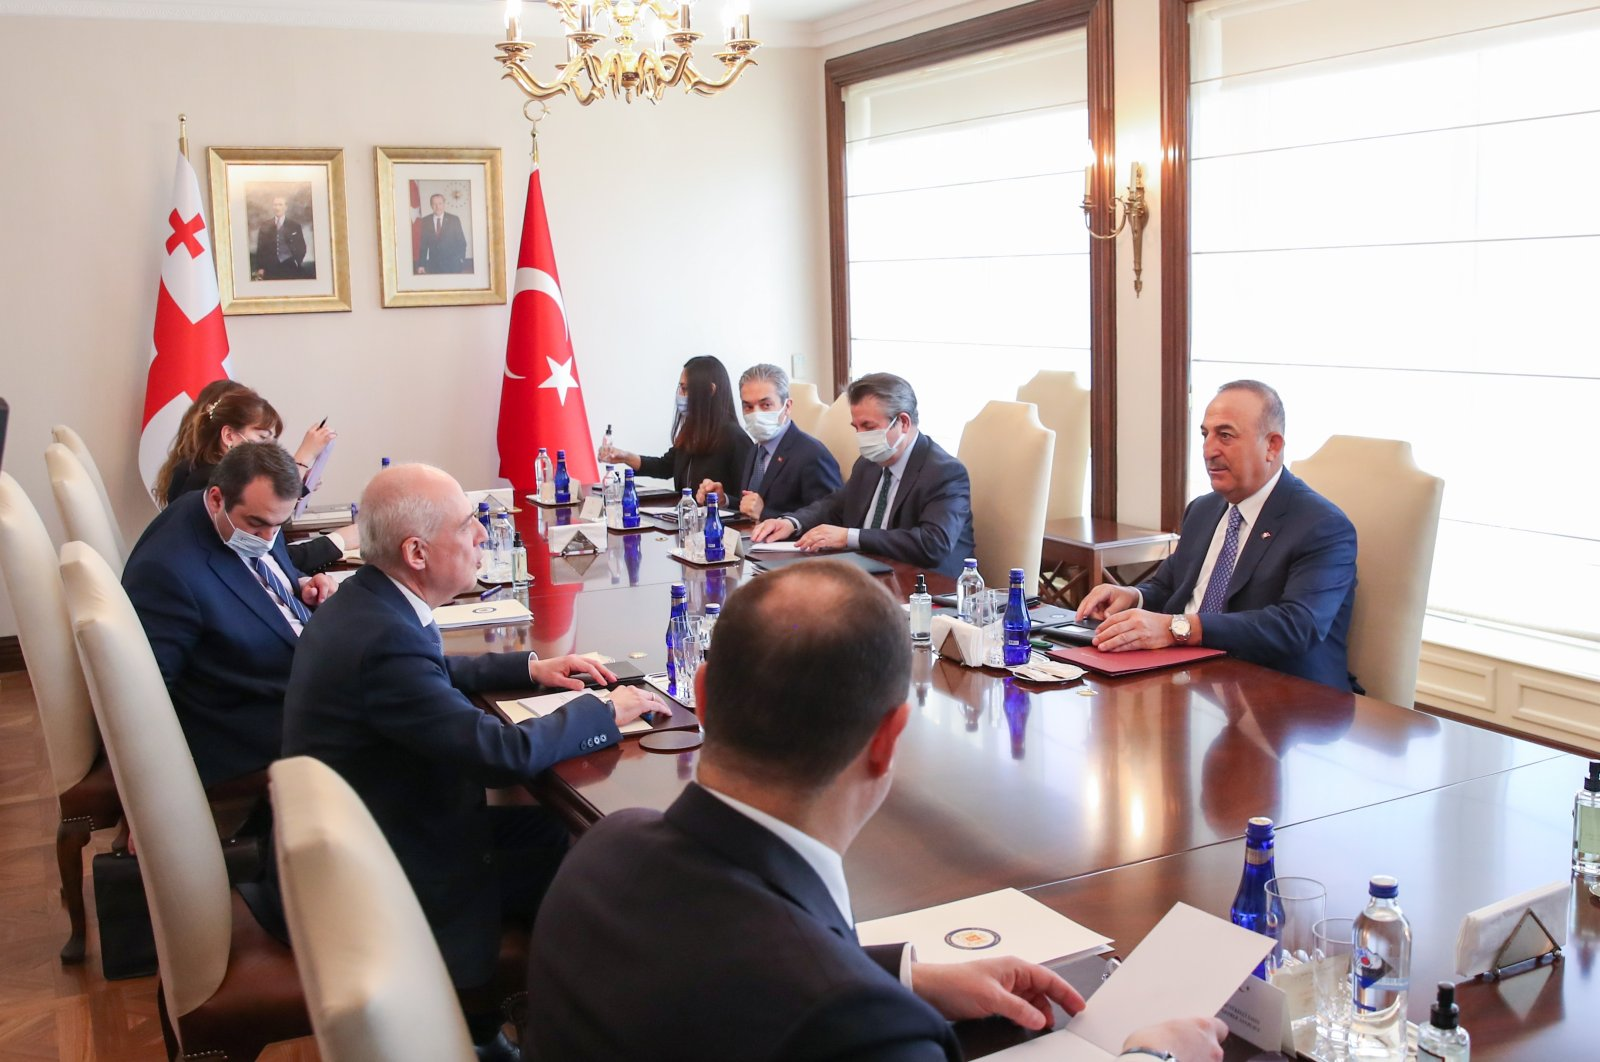 Georgia's Vice Prime Minister and Foreign Minister David Zalkaliani (2nd from front, L) during a meeting with Foreign Minister Mevlüt Çavuşoğlu (1st from front, R) in the capital Ankara, Turkey, March 3, 2021 (AA Photo)